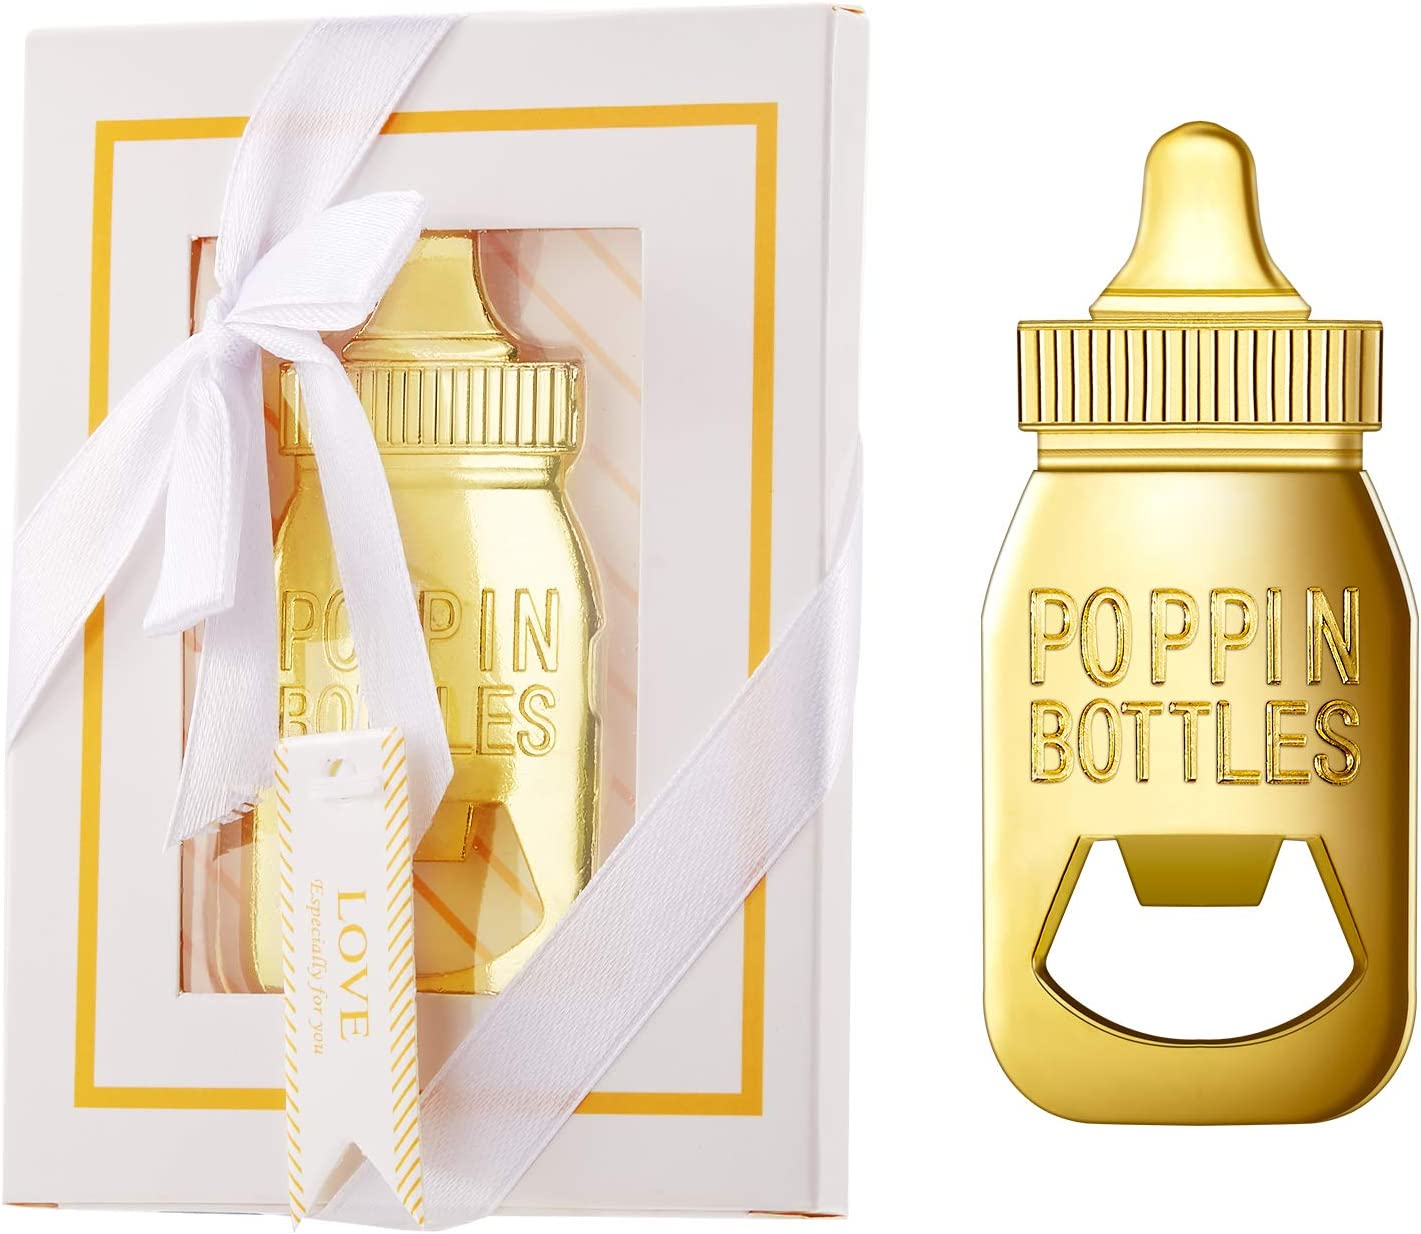 24 Packs Baby Bottle Opener Baby Shower Party Favor Poppin Bottle Shaped Bottle Opener Baby Shower Return Gifts for Guest Wedding Party Souvenir Birthday Bridal Shower (White)